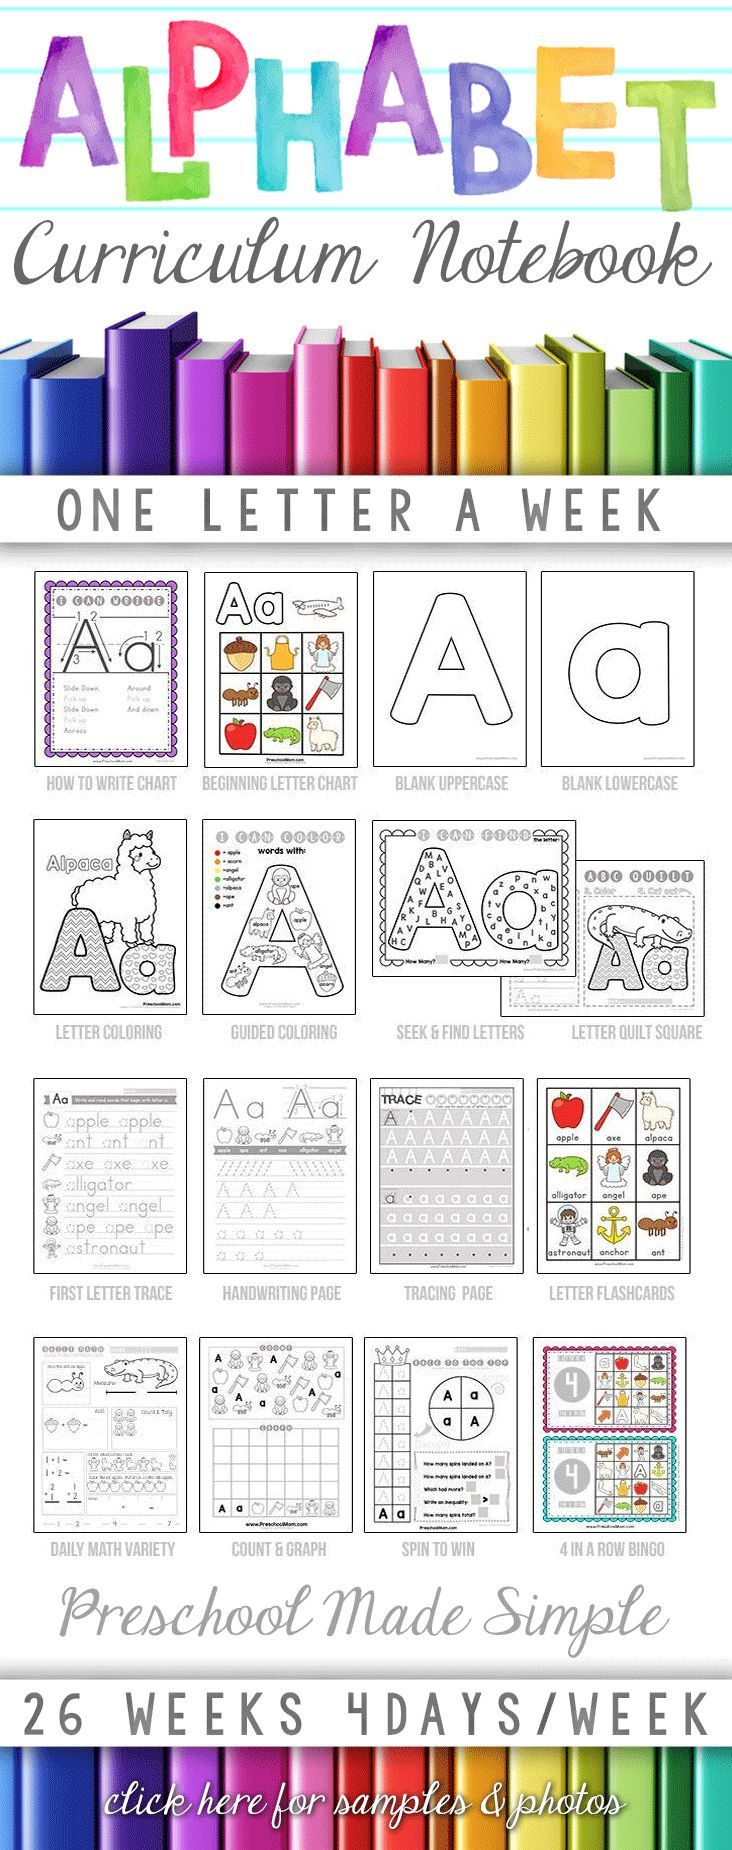 Alphabet Curriculum Notebook from Preschool Mom. http://craftyclassroom.com/product/letter-of-the-week-curriculum-binder/ Low Prep, Low Ink, Print Ready. Perfect for Home Preschool, or K4 Curriculum. Classroom License Available. http://craftyclassroom.com/product/letter-of-the-week-curriculum-binder/